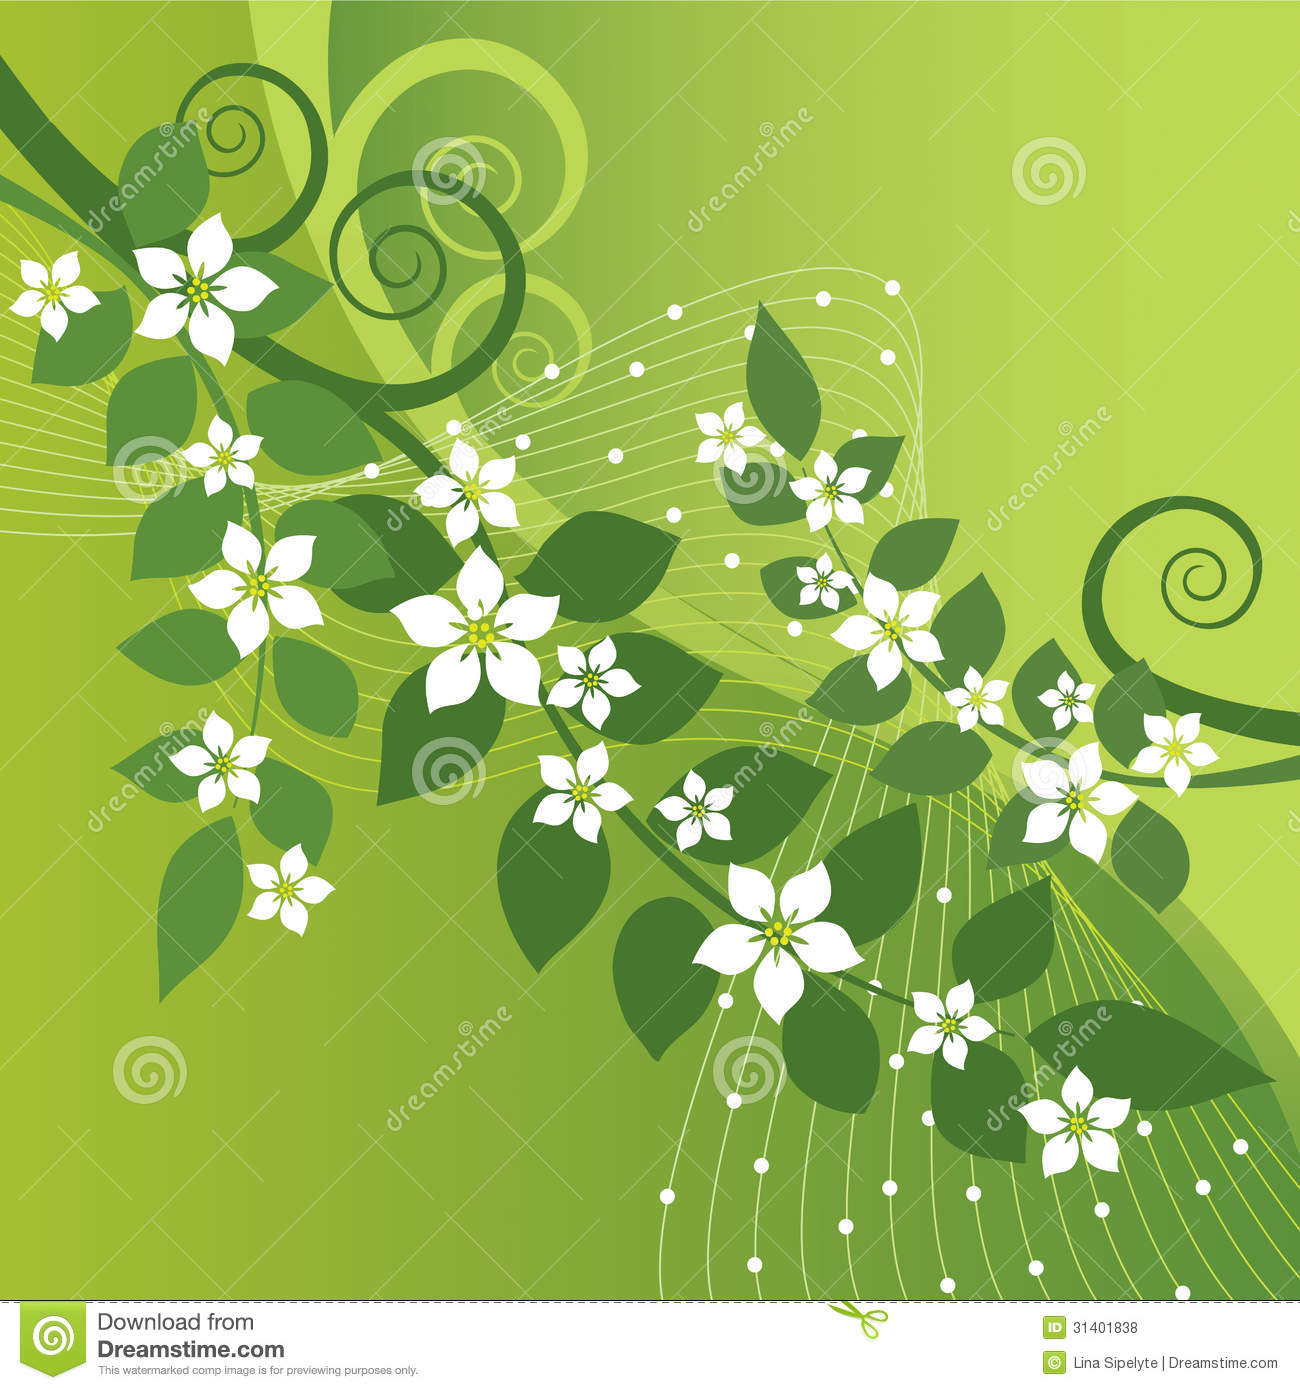 Jasmine Flower Vector Free Download Jasmine Flower Vector Free